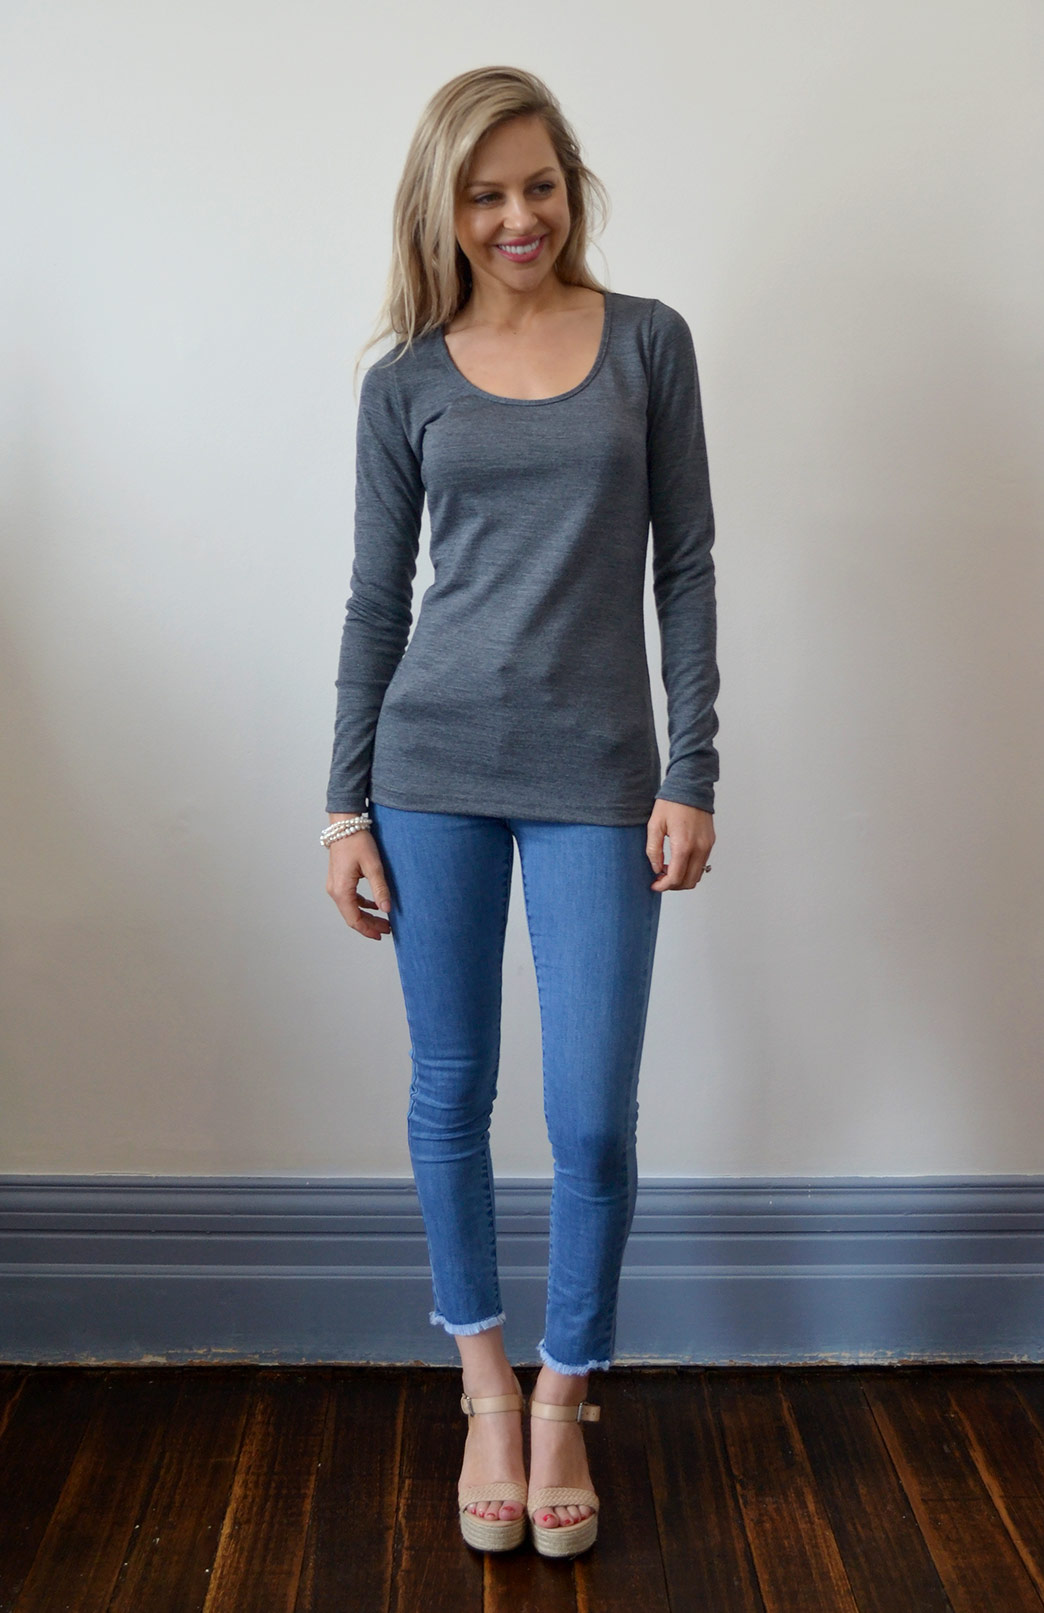 Round Neck Top - Plain - Women's Classic Black Long Sleeve Merino Modal Layering Fashion Top - Smitten Merino Tasmania Australia